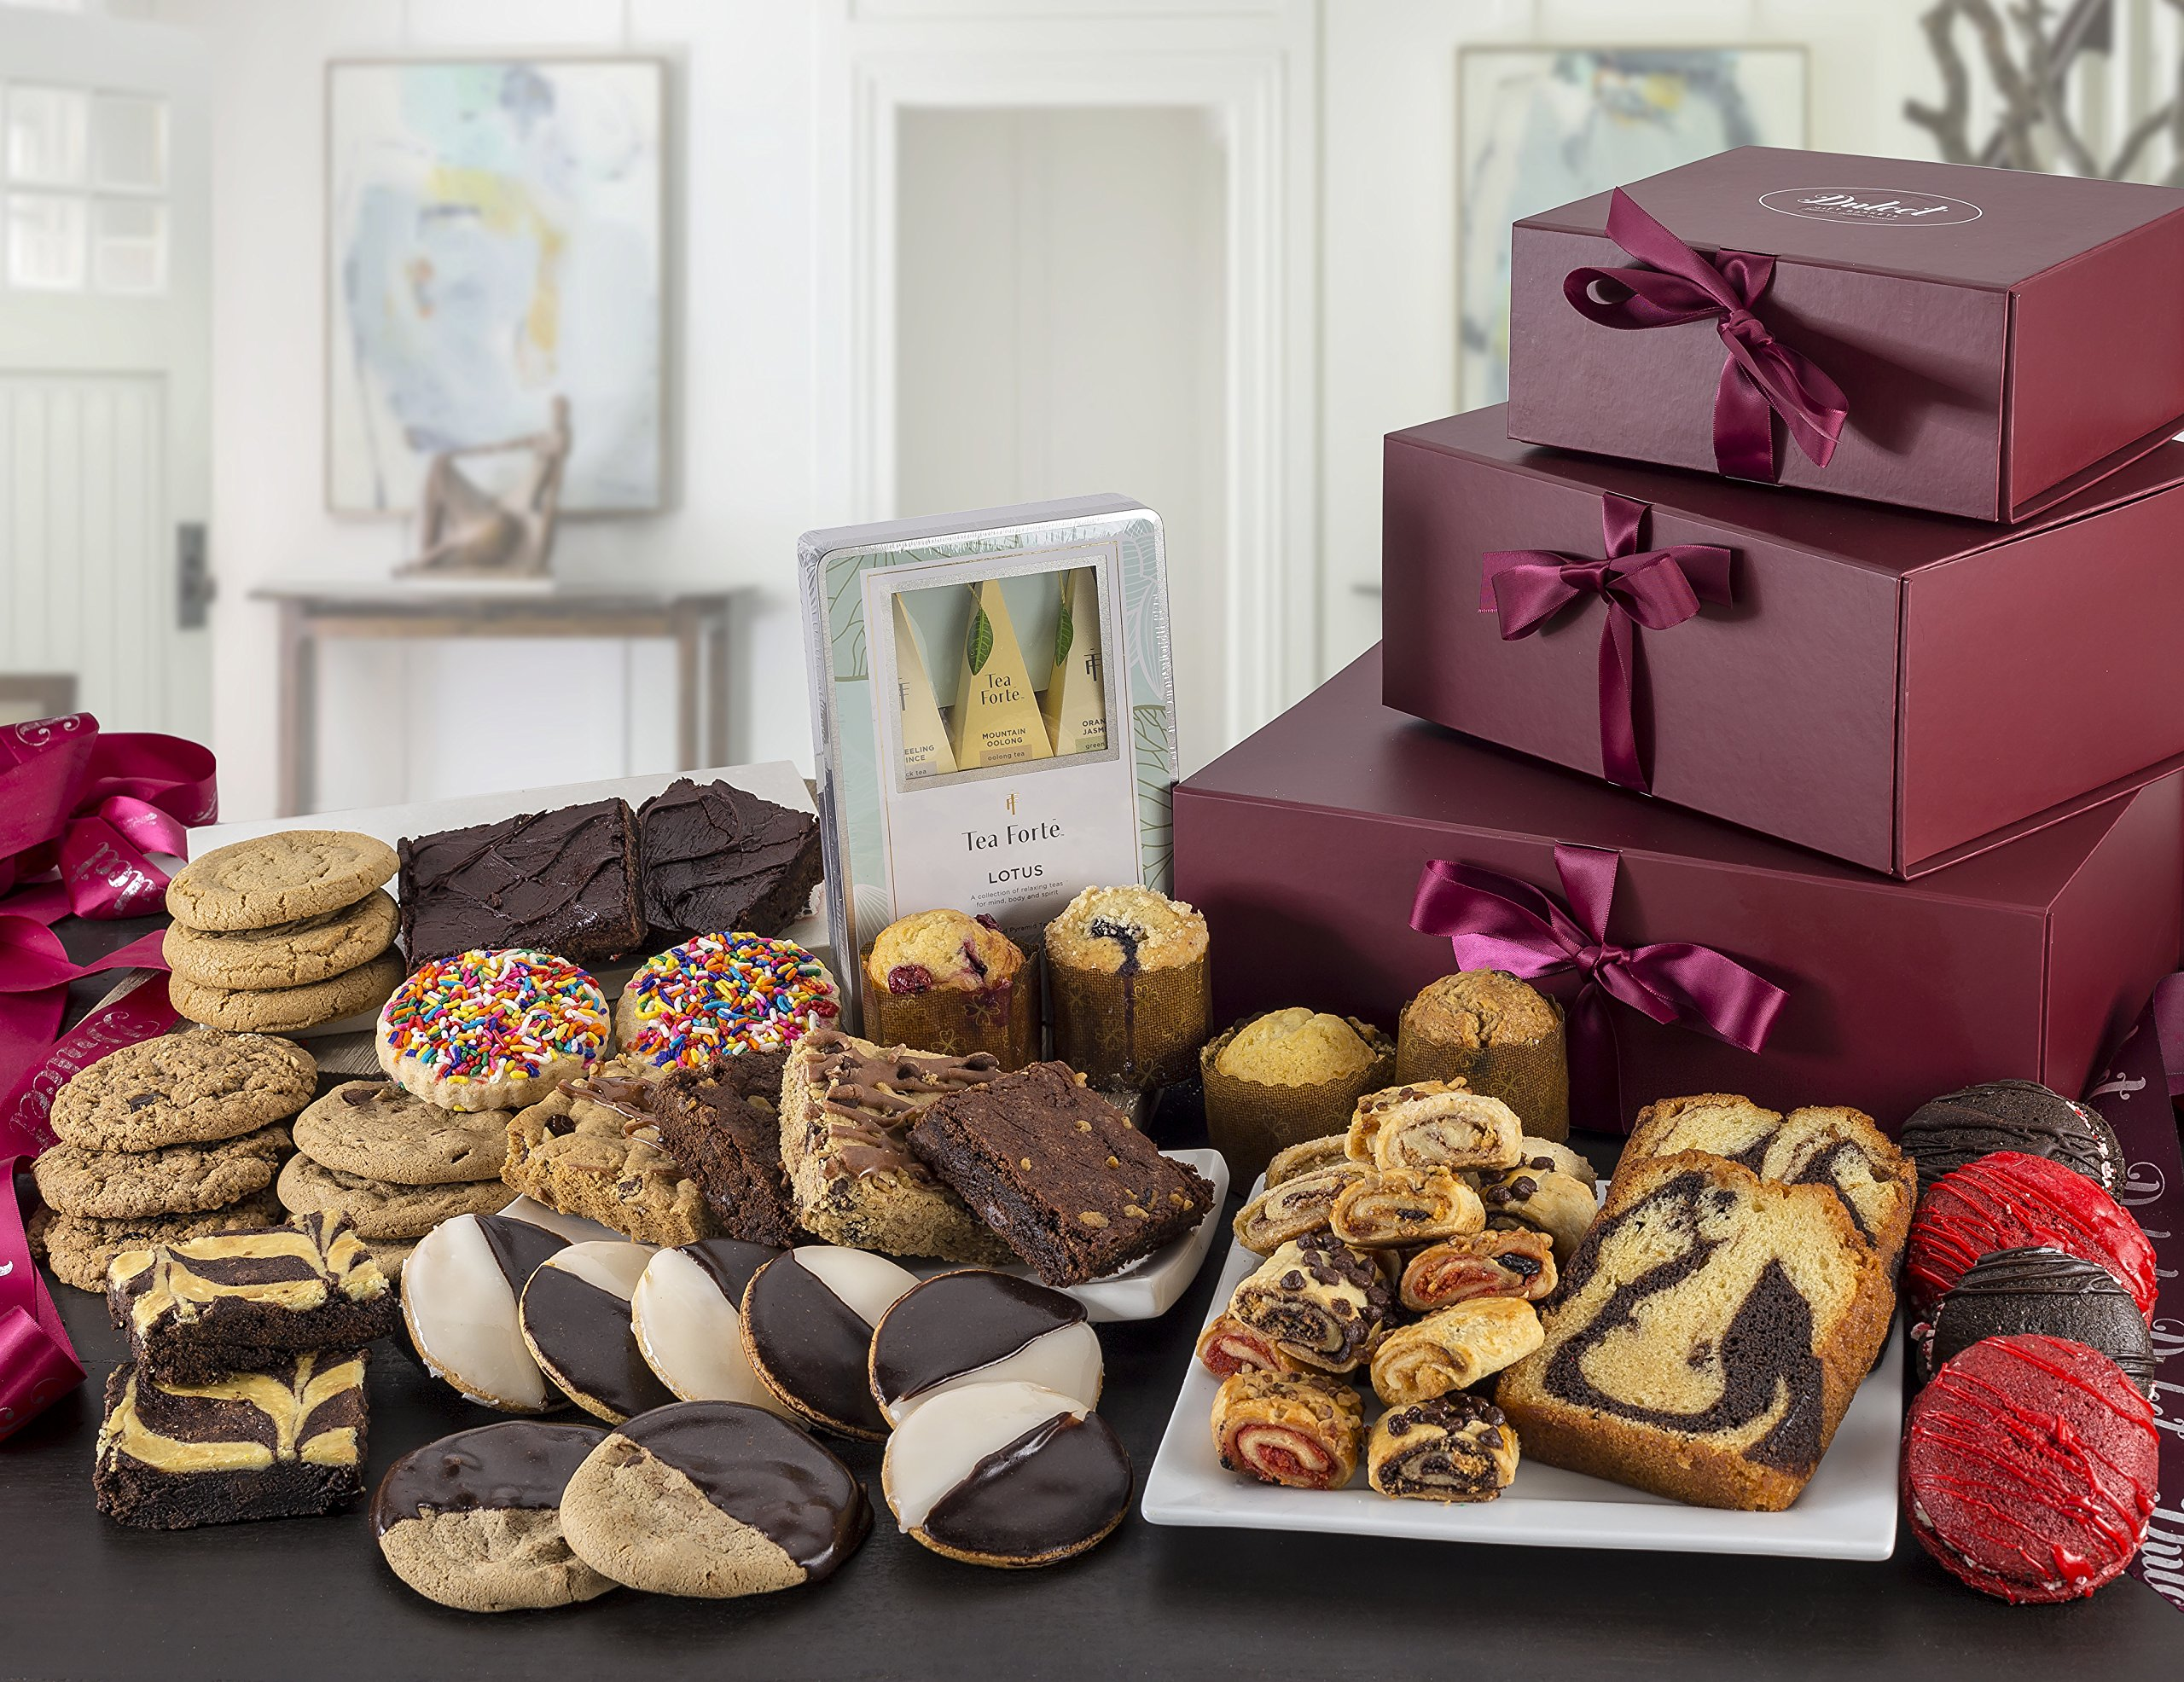 Dulcet's Ultimate Gift Tower Baskets Includes- Cookies, Whoopee Pies,Brownies, Rugelah, Muffins, Pond Cakes, Tea. Best Gift Idea!